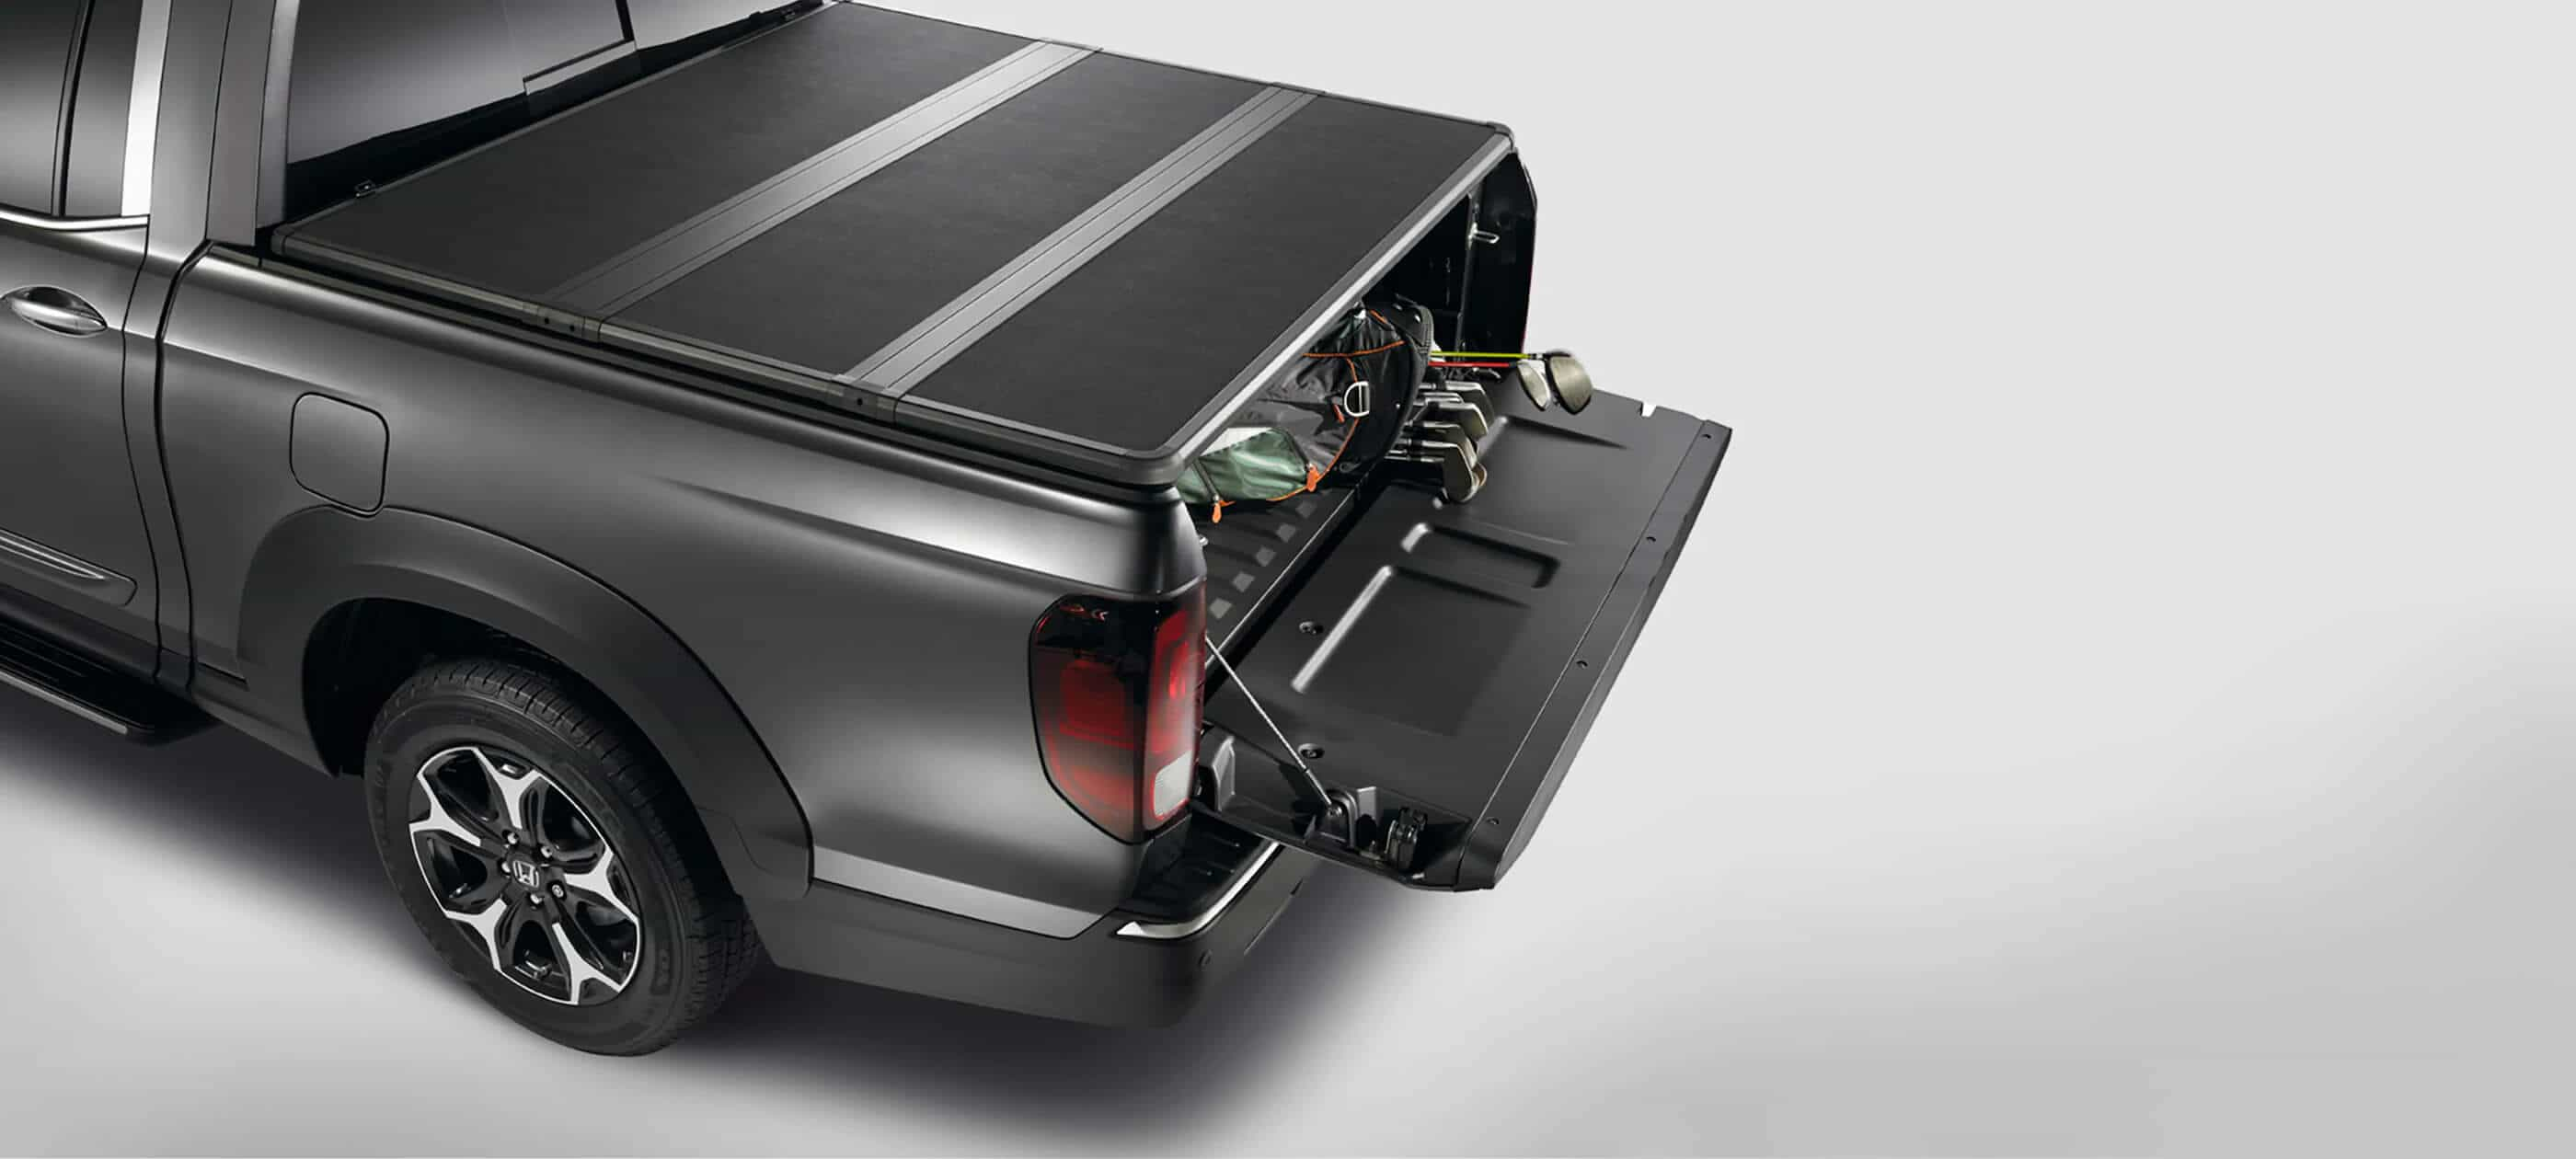 Lockable Tailgate